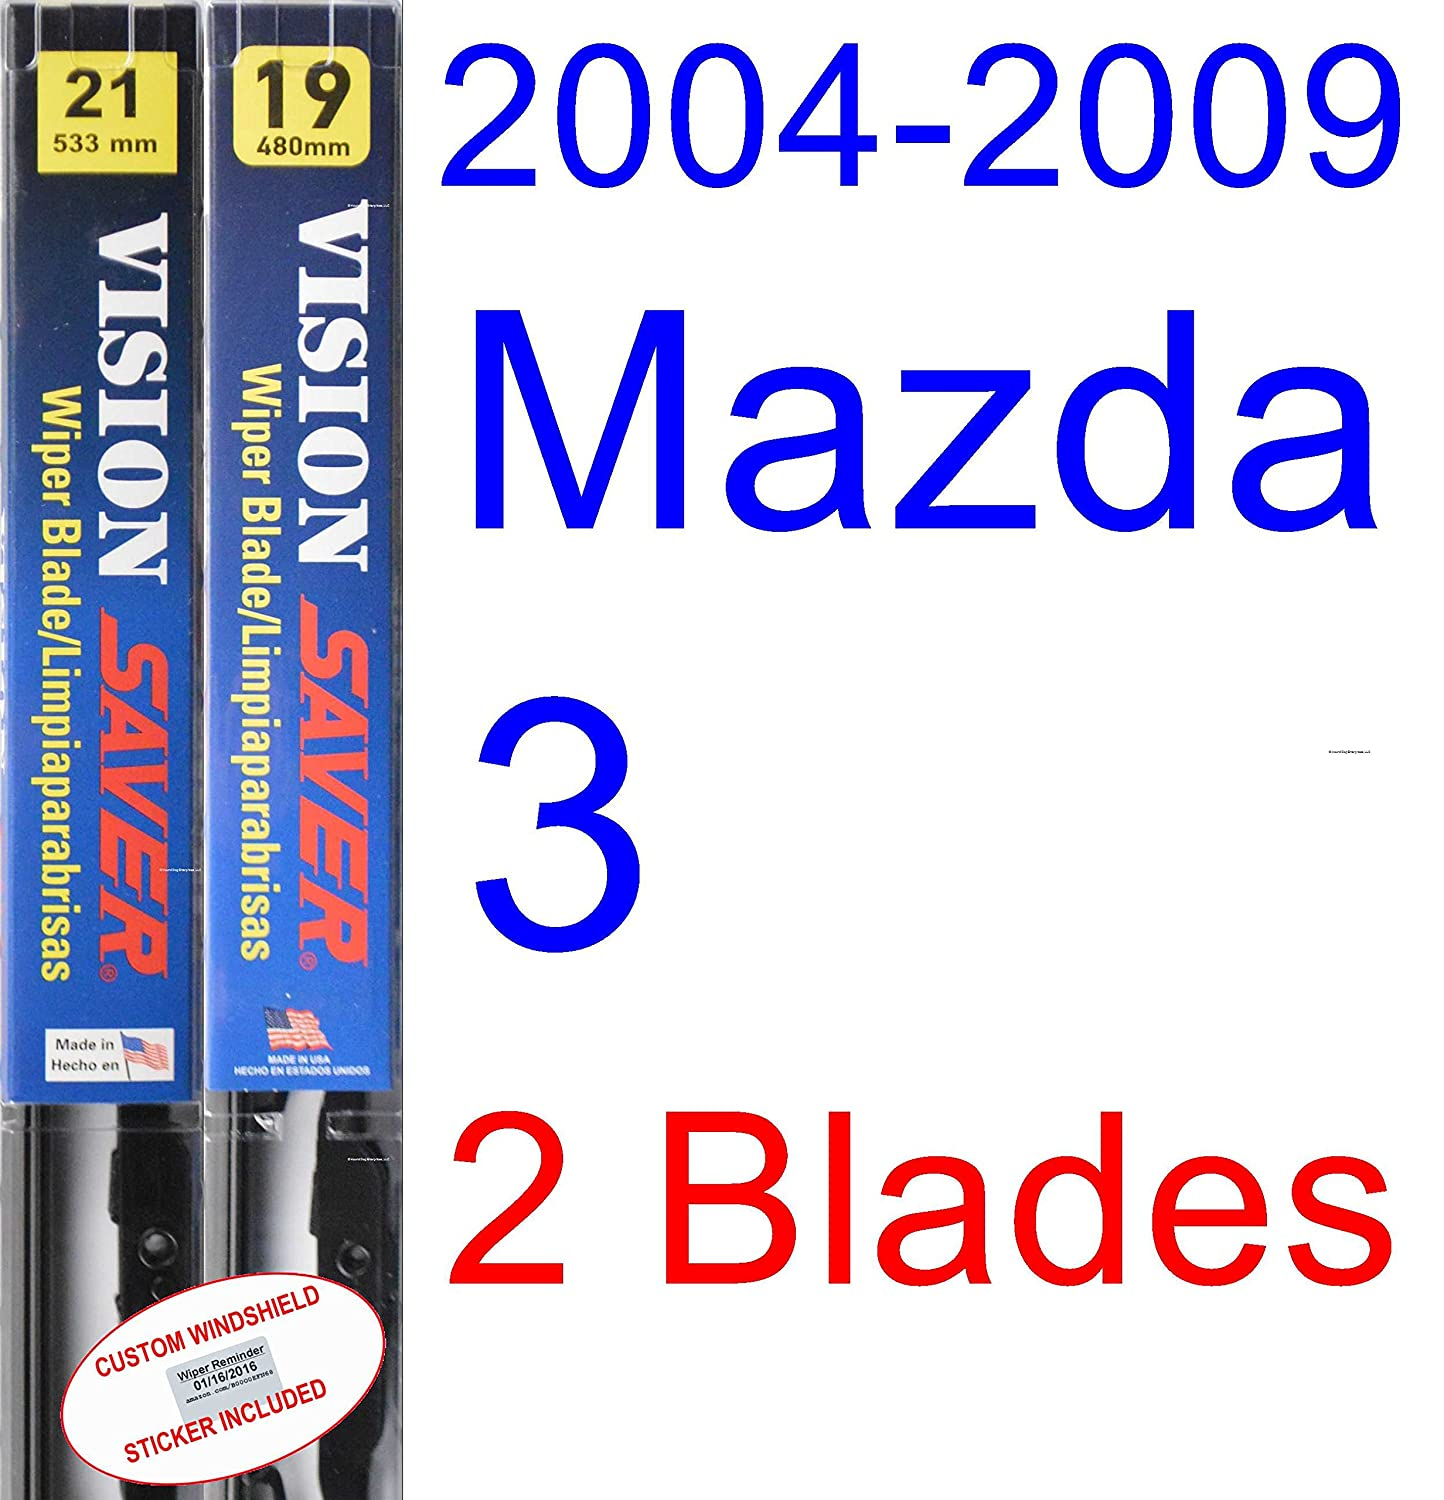 Amazon.com: 2004-2009 Mazda 3 Wiper Blade (Driver) (Saver Automotive Products-Vision Saver) (2005,2006,2007,2008): Automotive